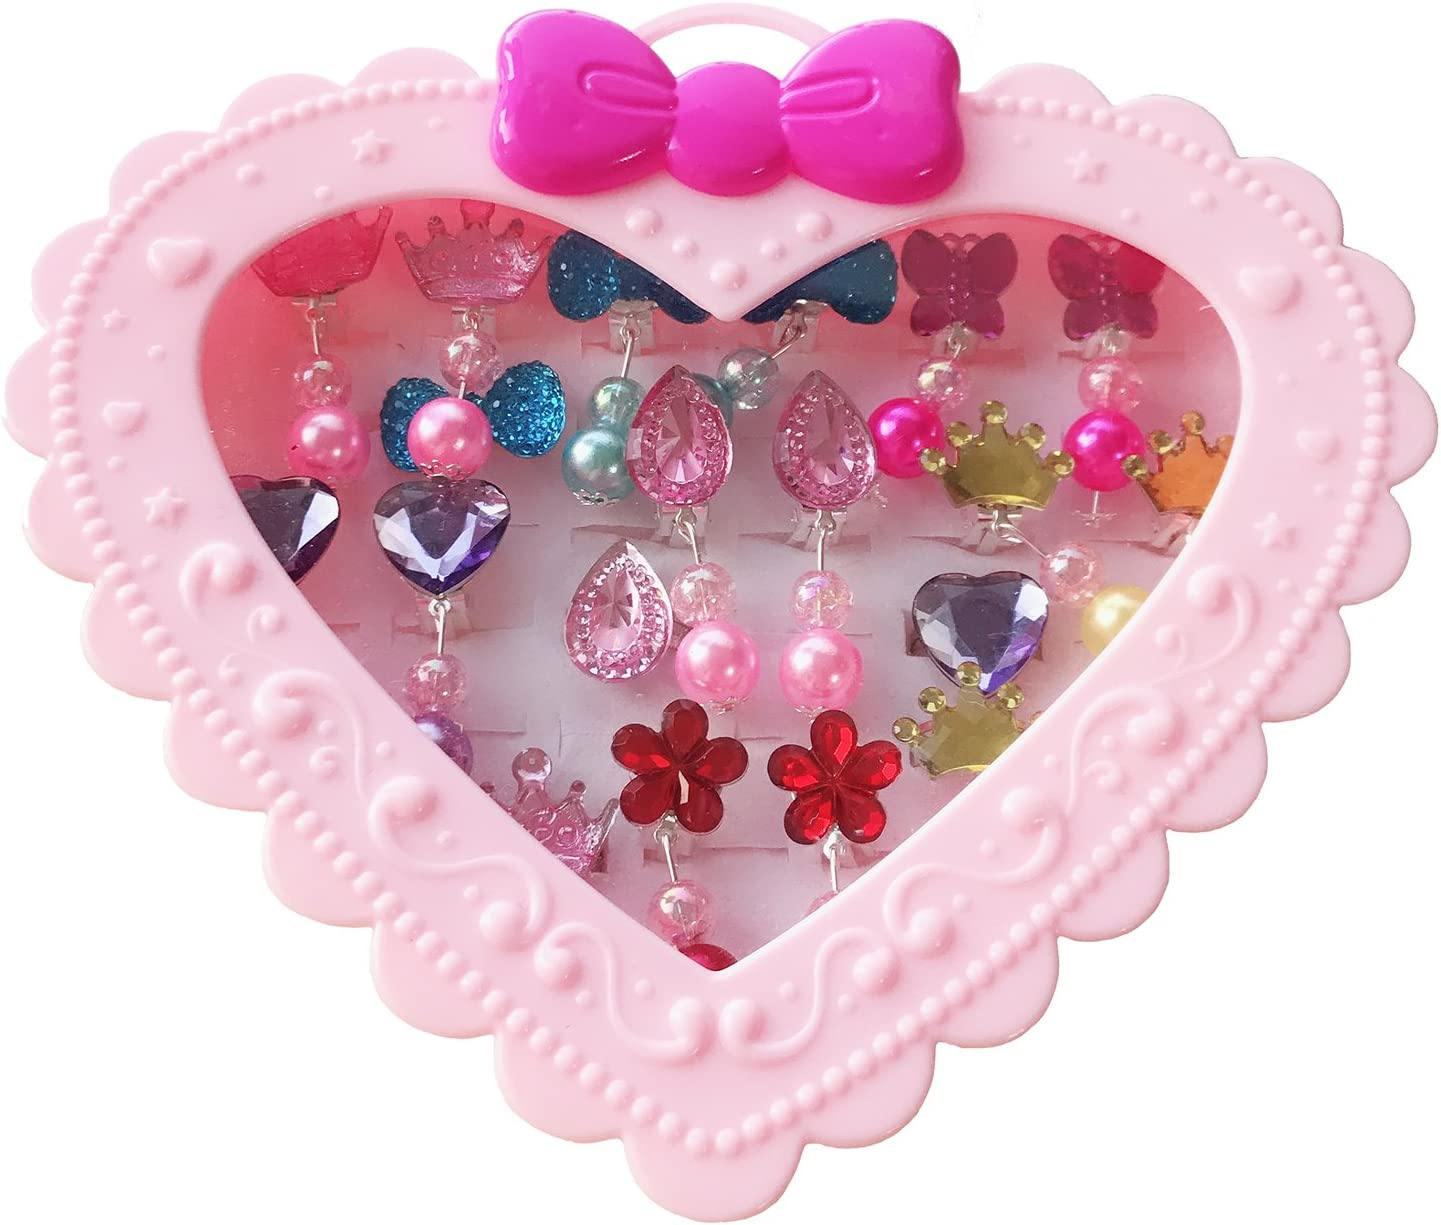 Elesa Miracle 28pcs Children Kids Little Girl Shiny Clip-on Earrings and Adjustable Jewelry Rings in Box, Girl Pretend Play Earrings and Dress up Rings